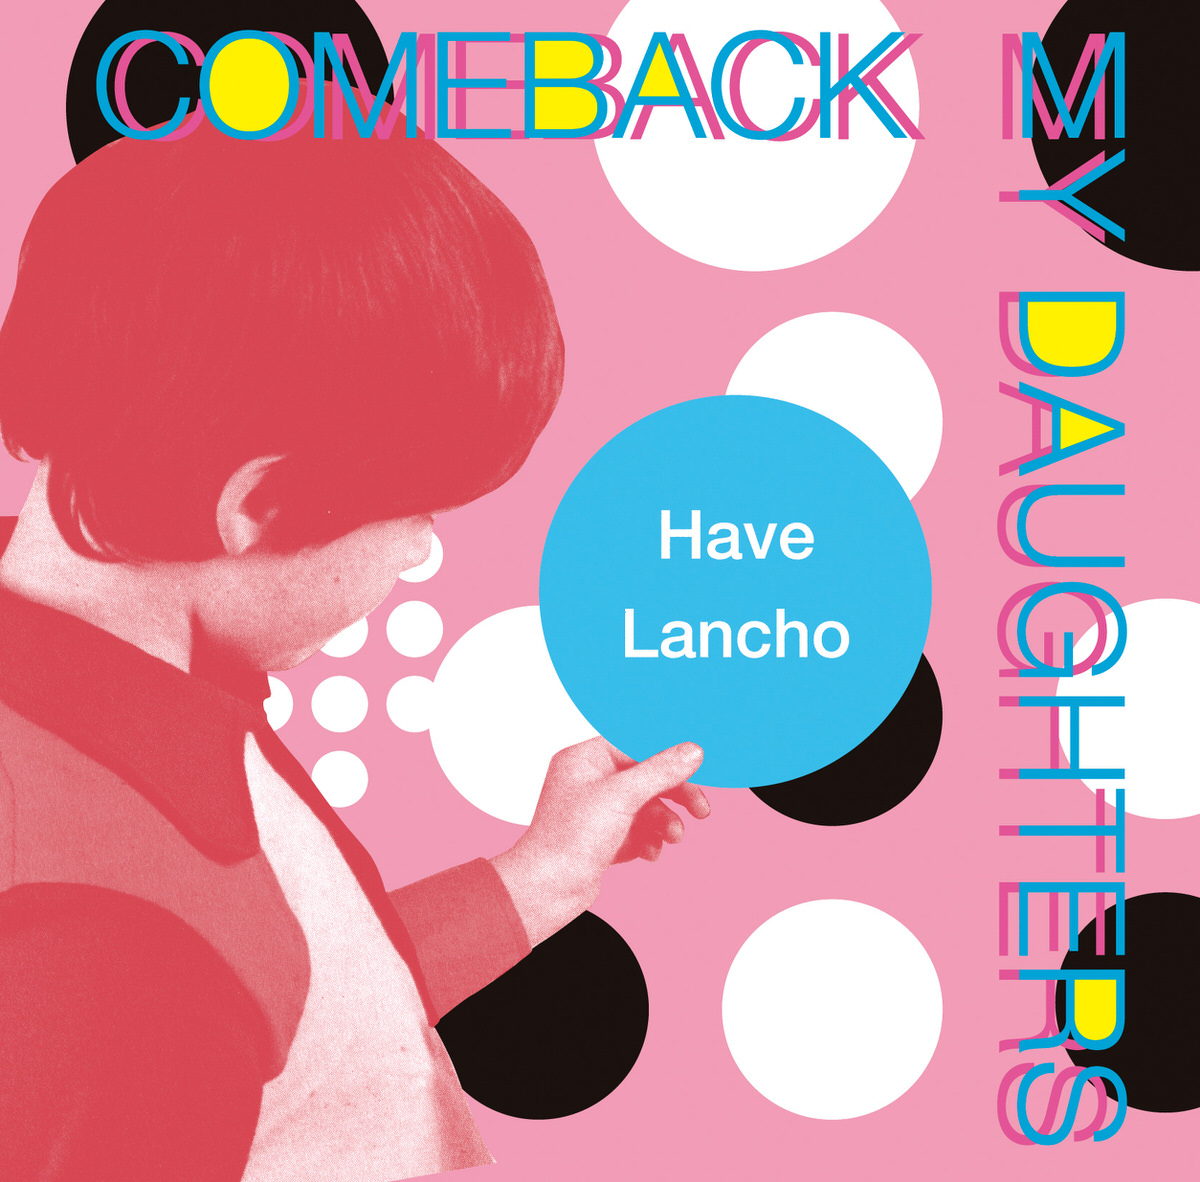 Have Lancho